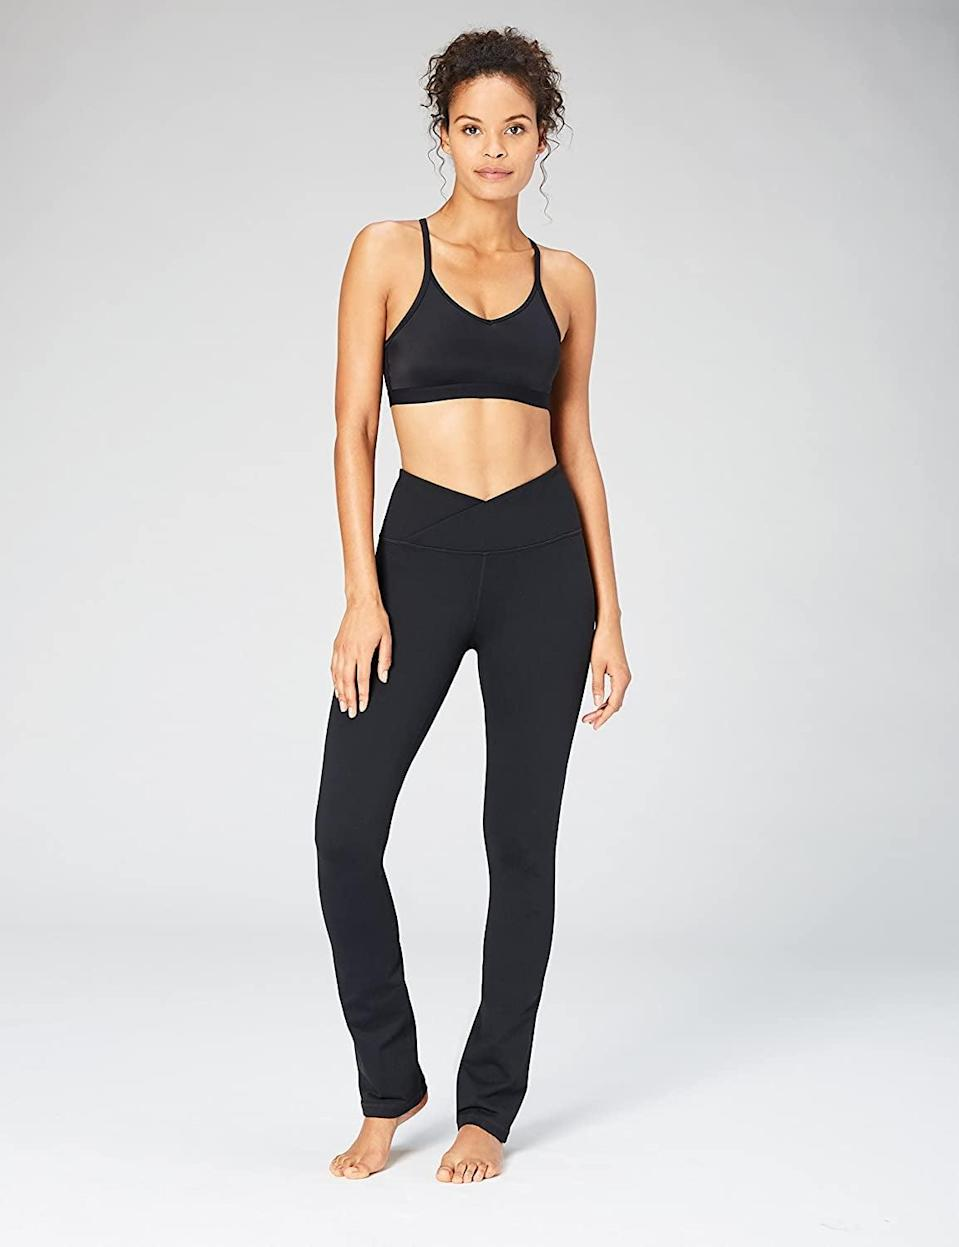 <p>These <span>Core 10 Build Your Own Yoga Straight Pants</span> ($19-$75) are great for yoga and pilates.</p>